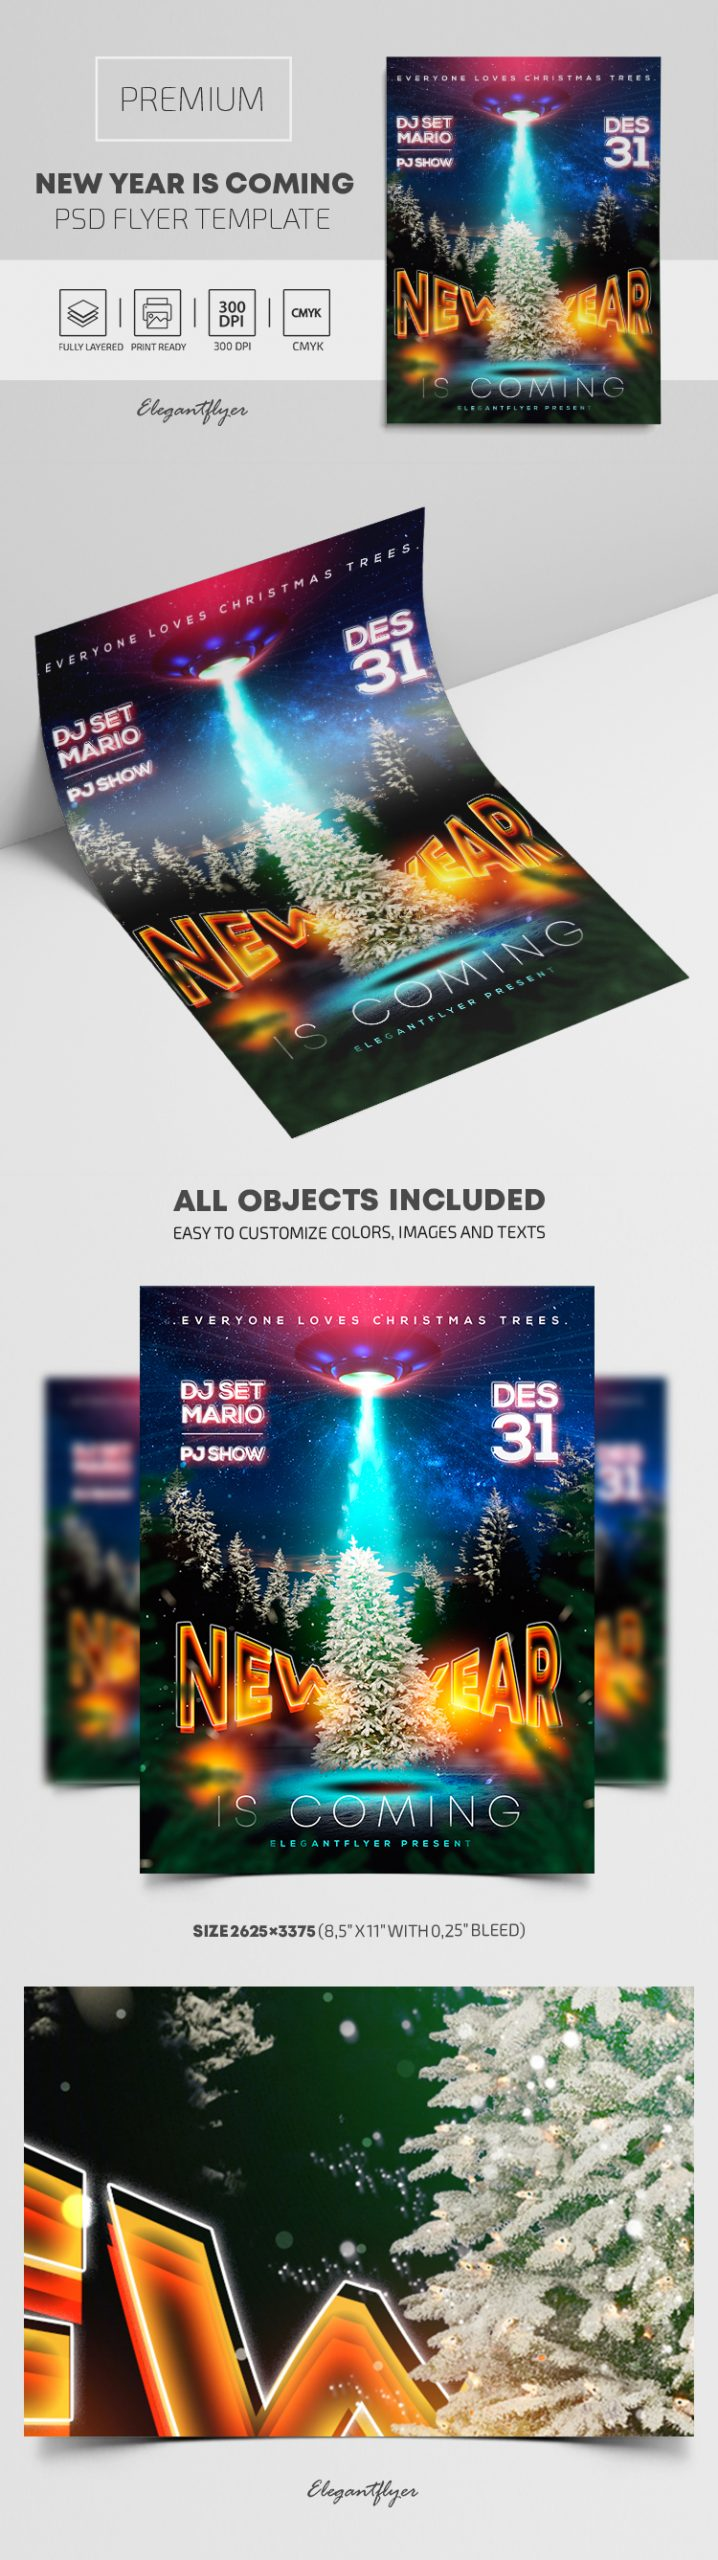 New Year is Coming – Premium PSD Flyer Template